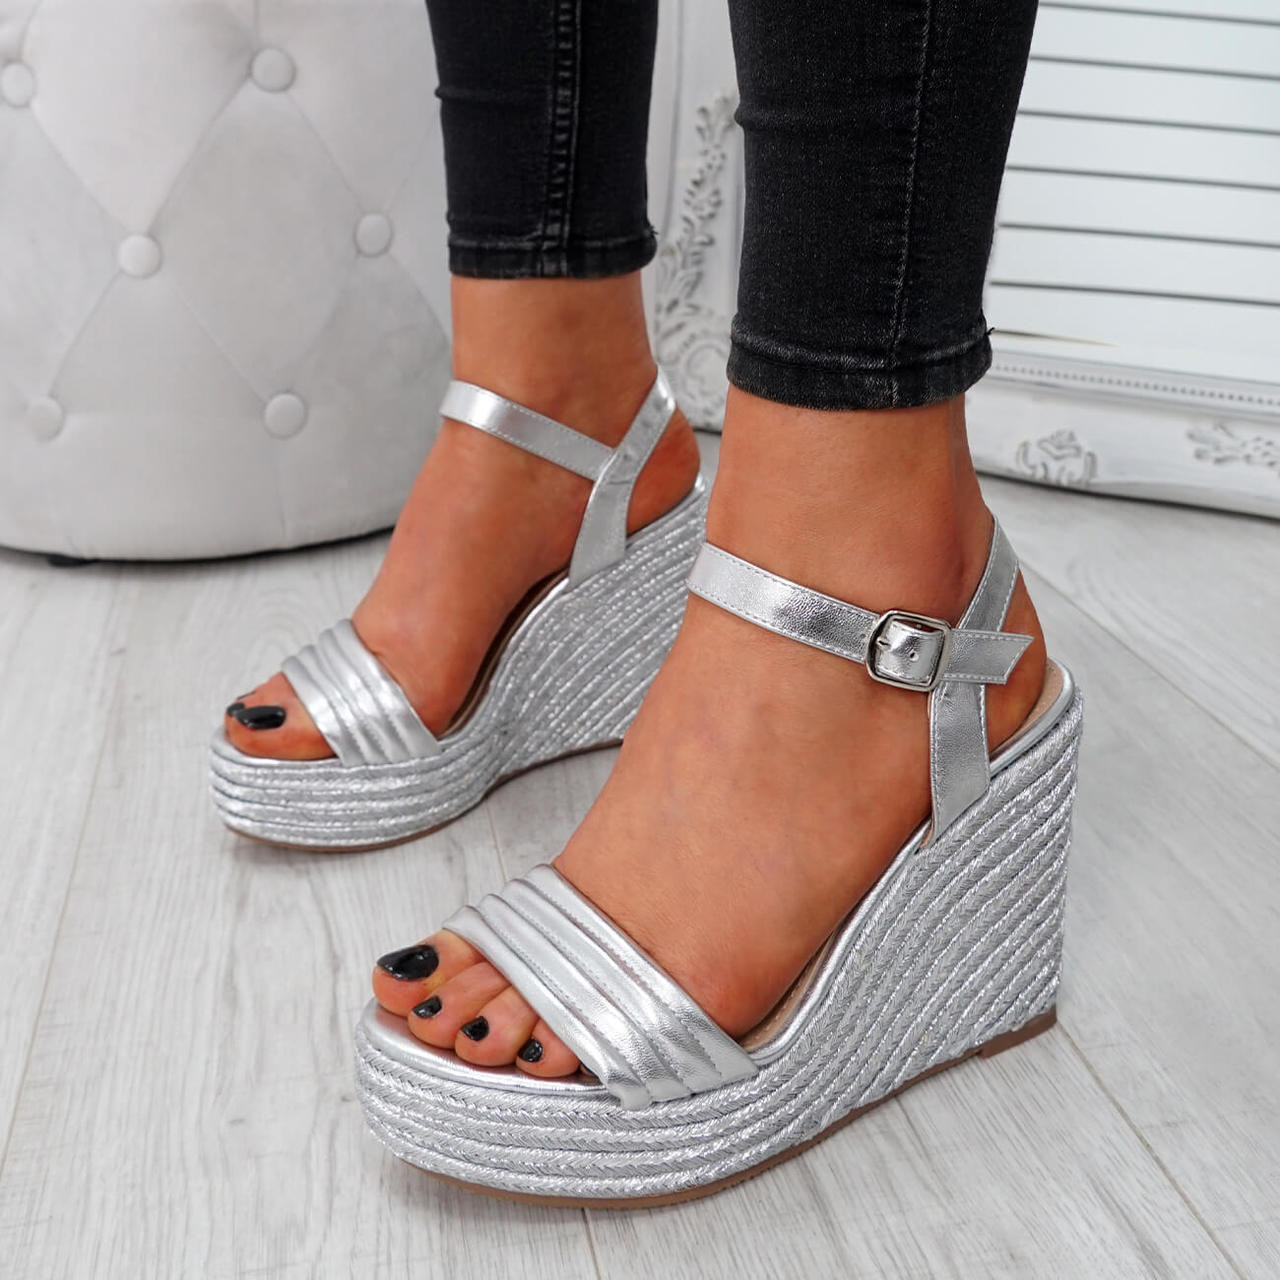 WOMENS LADIES ANKLE STRAP PLATFORM WEDGE HIGH HEEL SANDALS BUCKLE SHOES SIZE